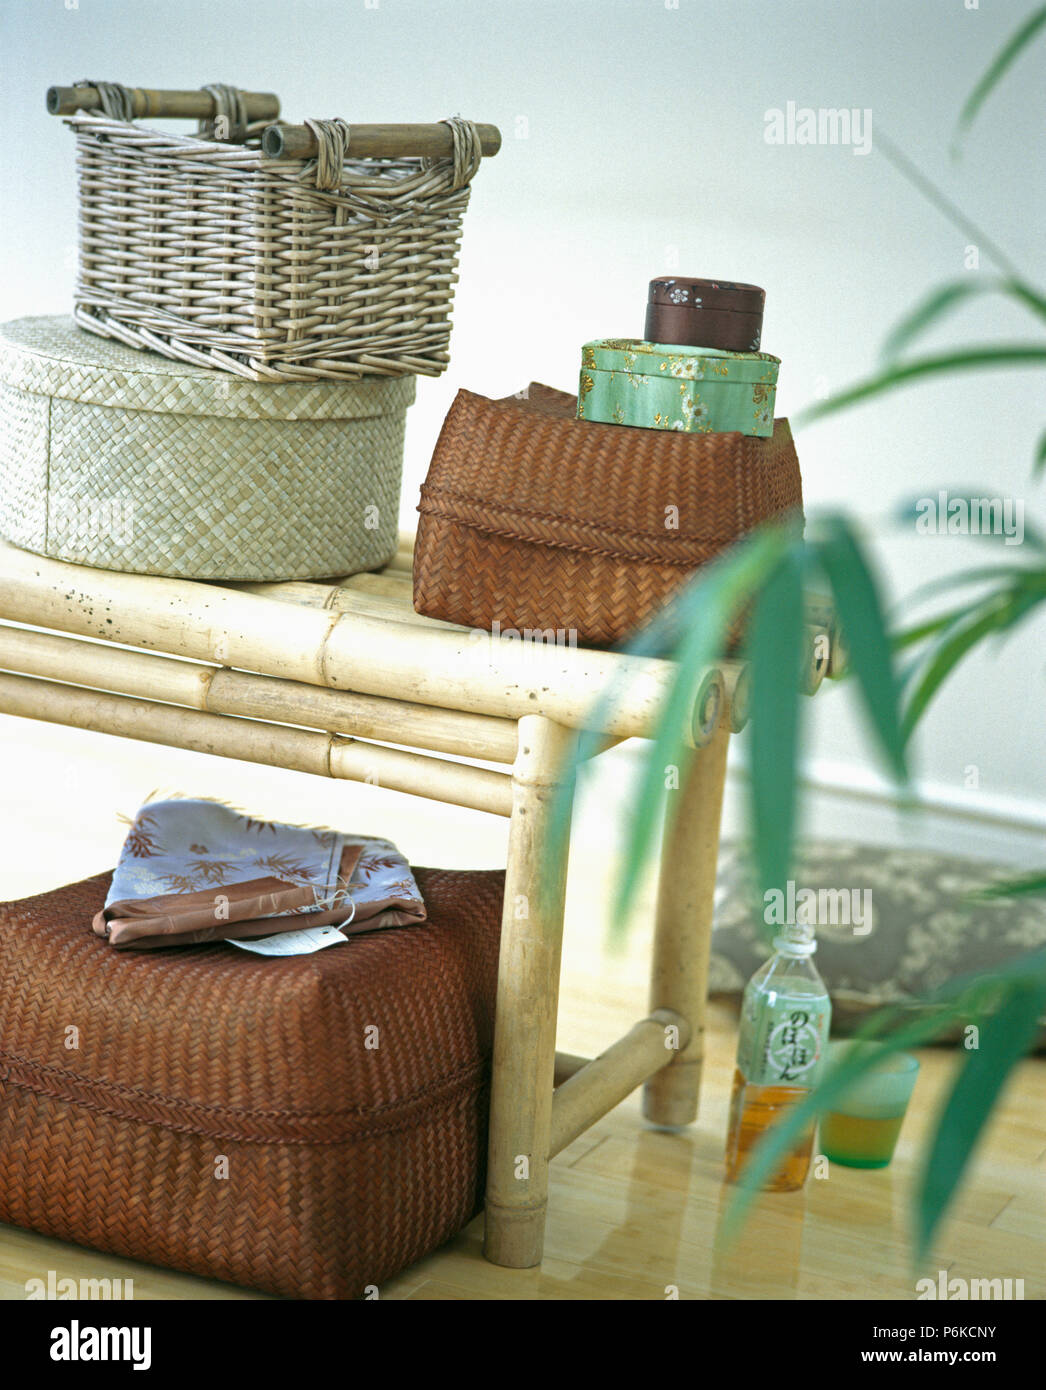 Close Up Of Lidded Wicker Storage Boxes On Bamboo Stool